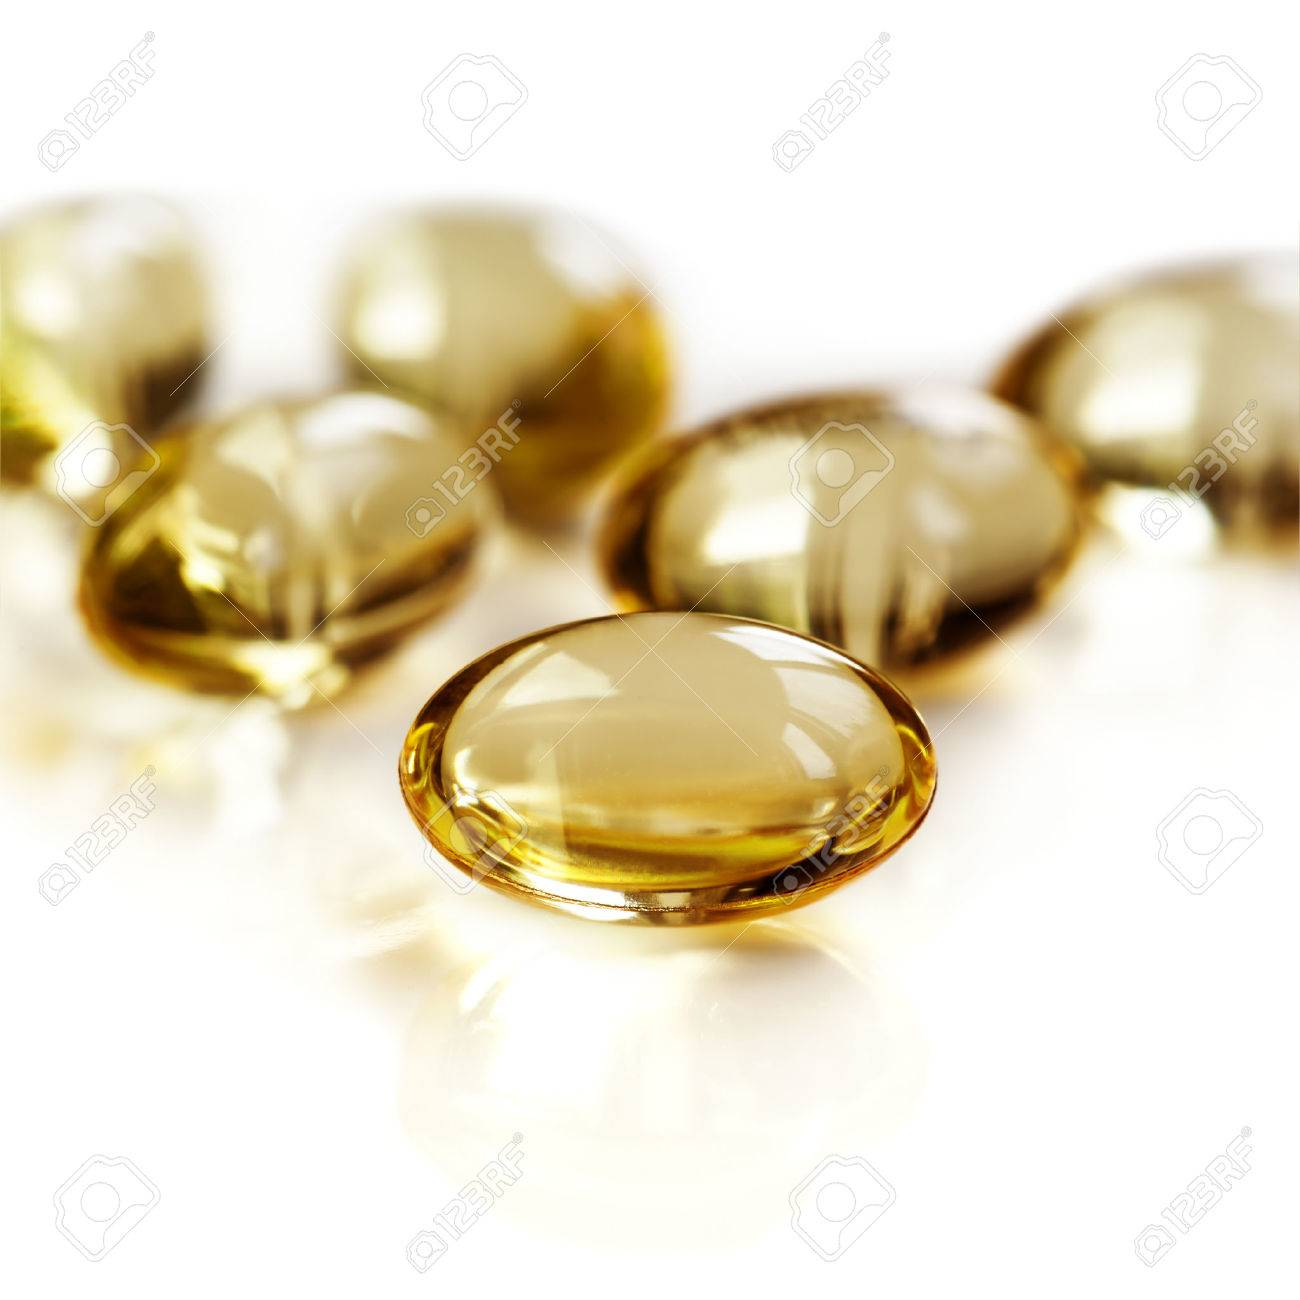 Gel capsules isolated on white. Vitamin D. - 30204098